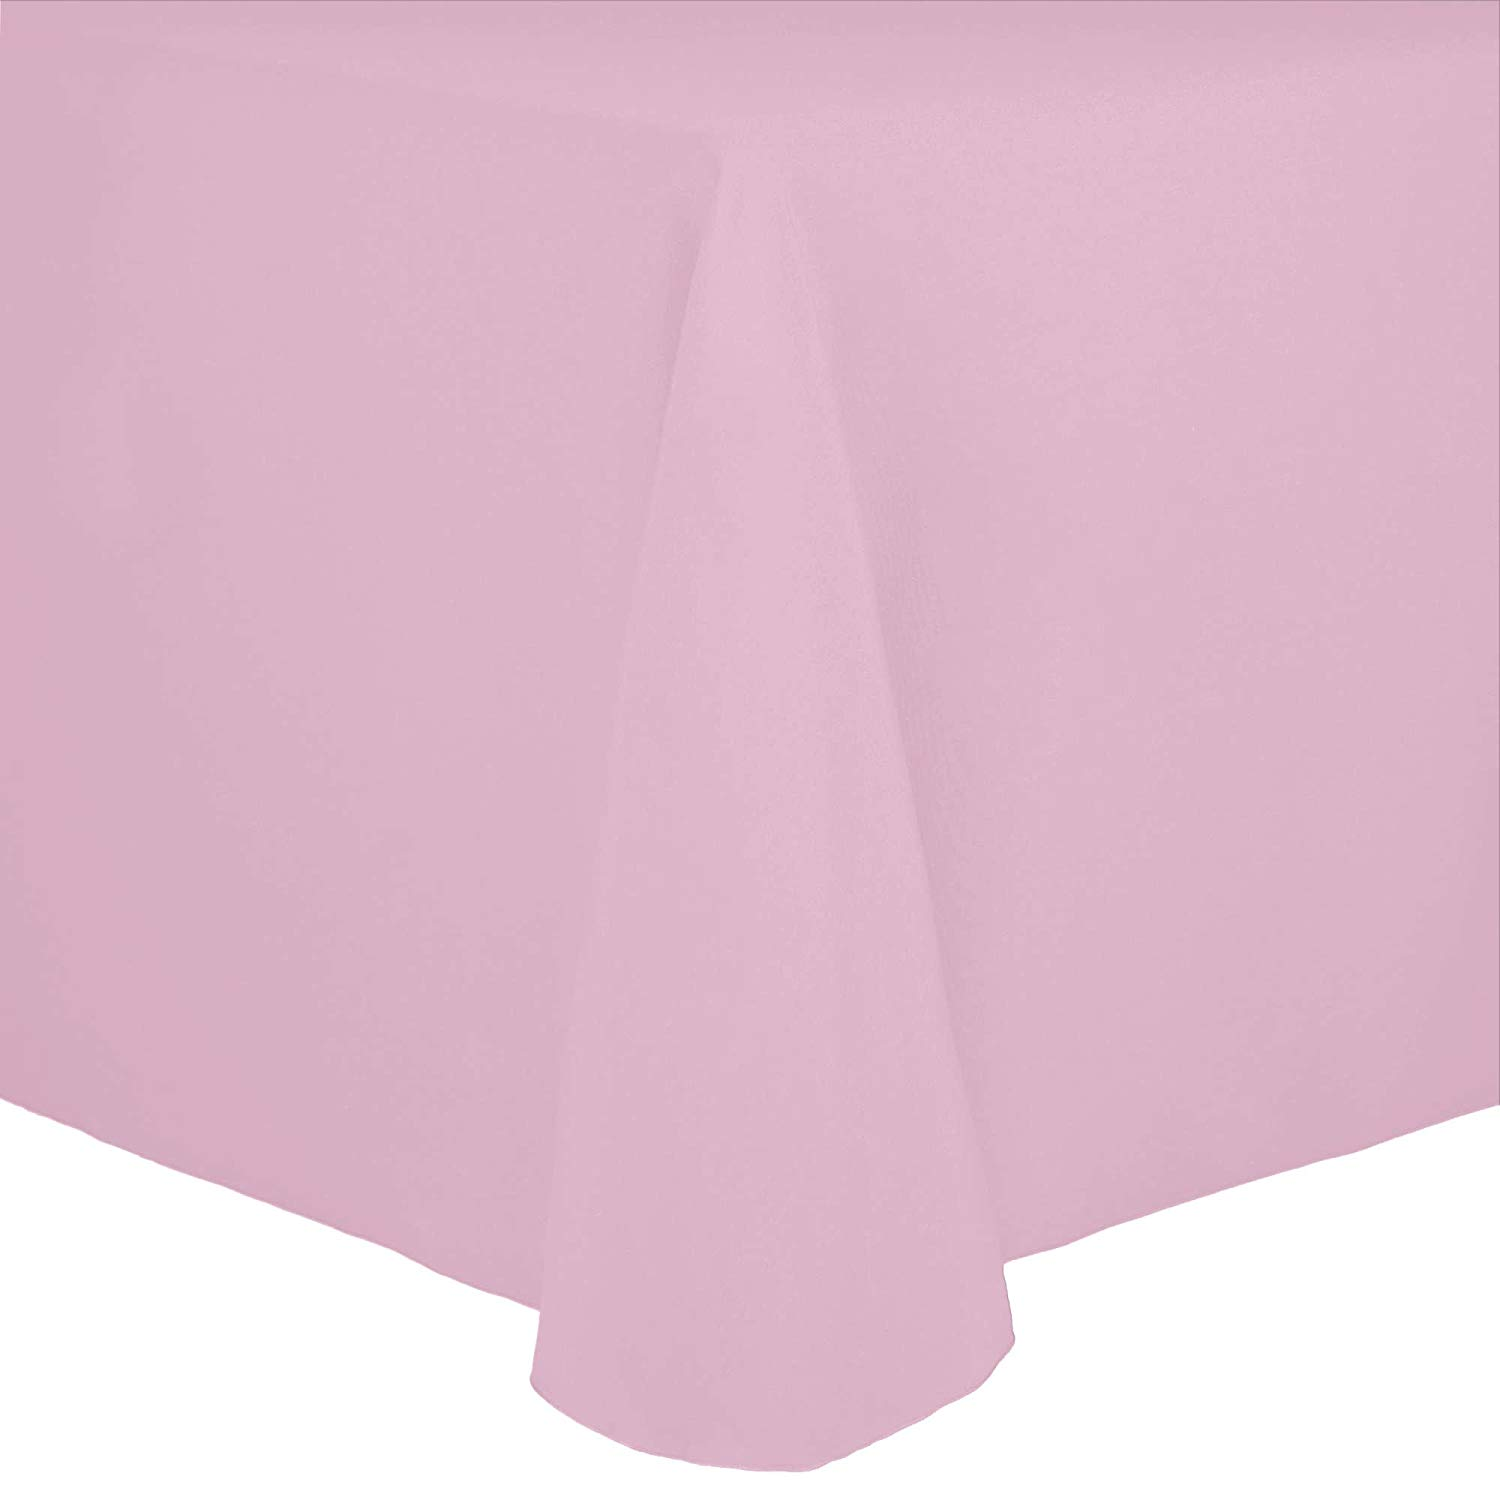 Cheap Oval Tablecloth Cotton Find Oval Tablecloth Cotton Deals On